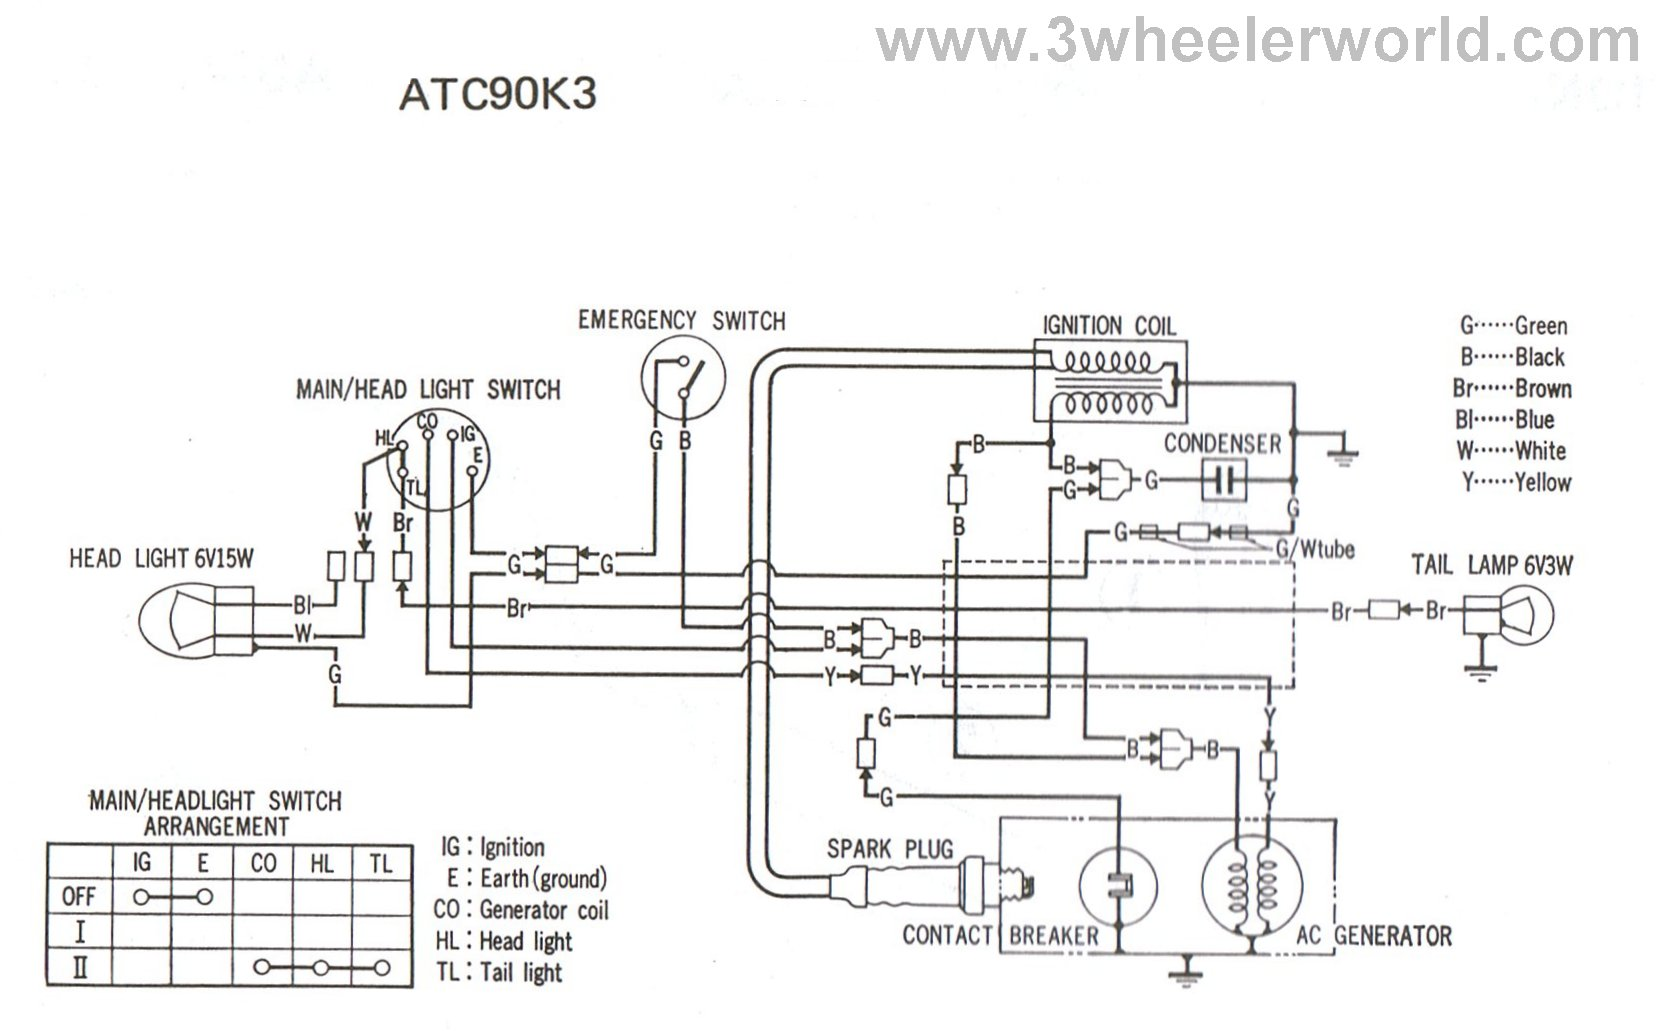 ATC90K3HM wiring diagram polaris xplorer 300 the wiring diagram 1995 polaris magnum 425 wiring diagram at gsmx.co